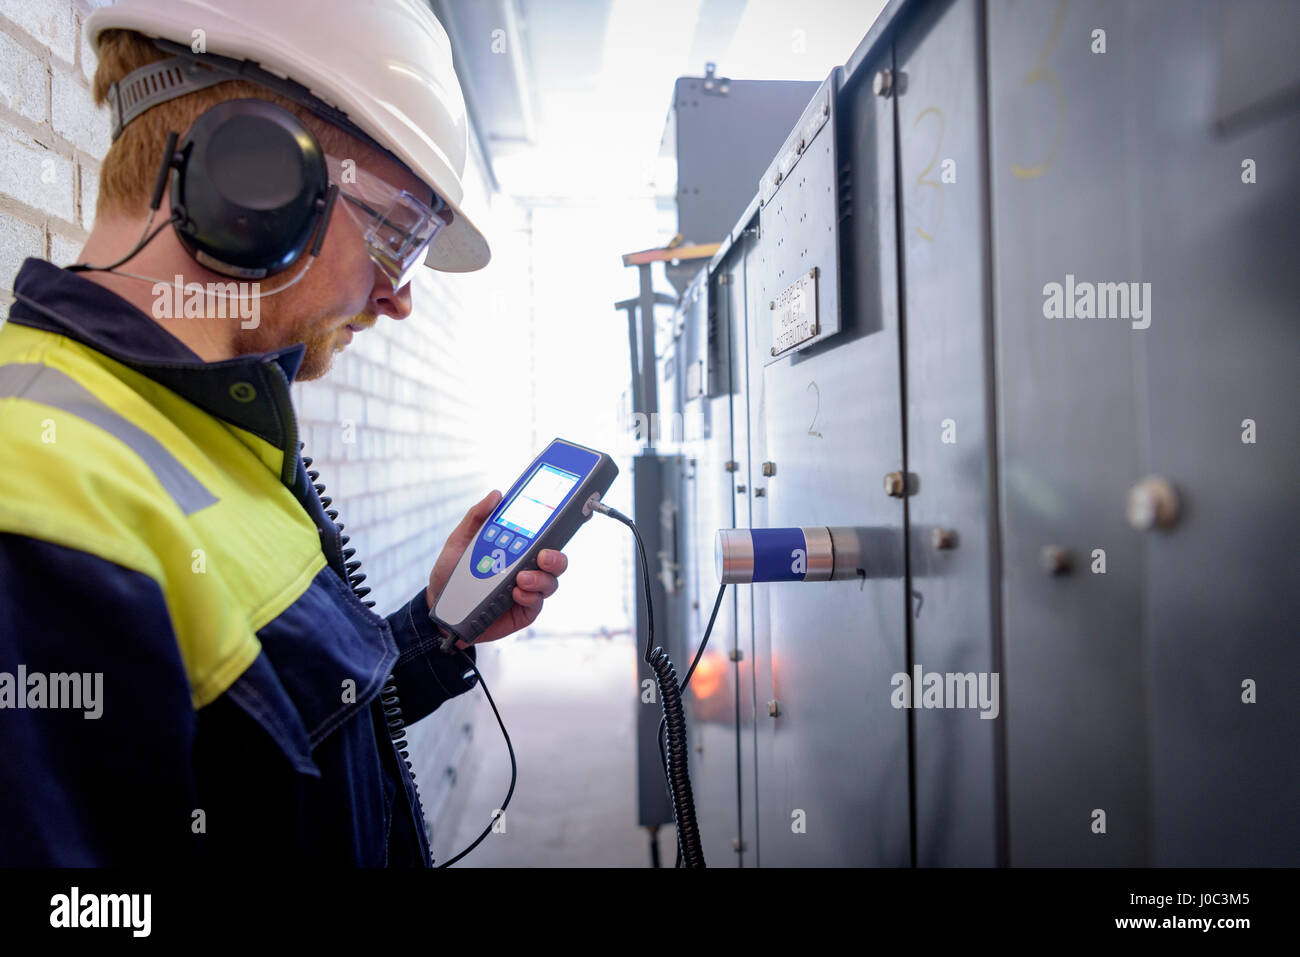 Worker testing for ultrasonic sound in electricity substation - Stock Image